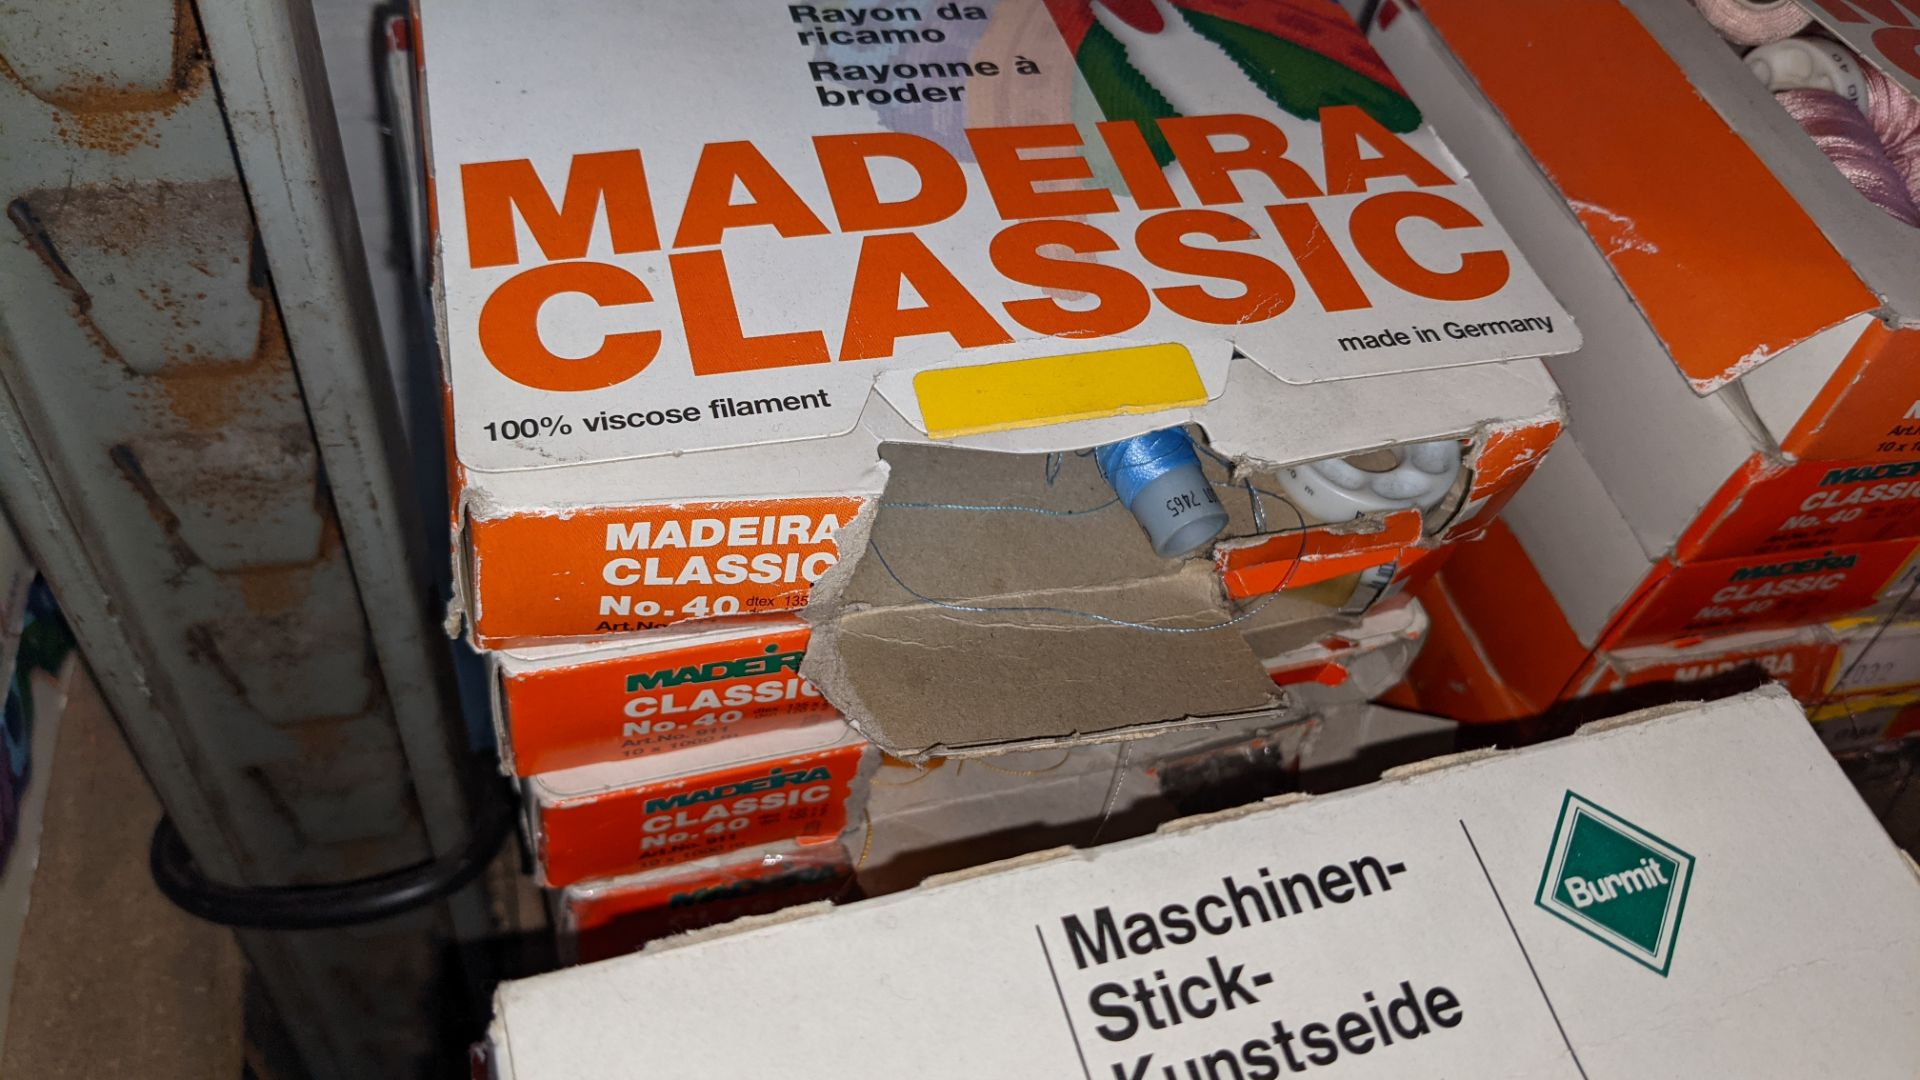 18 assorted boxes of Madeira Classic No. 40 embroidery rayon thread - Image 5 of 8